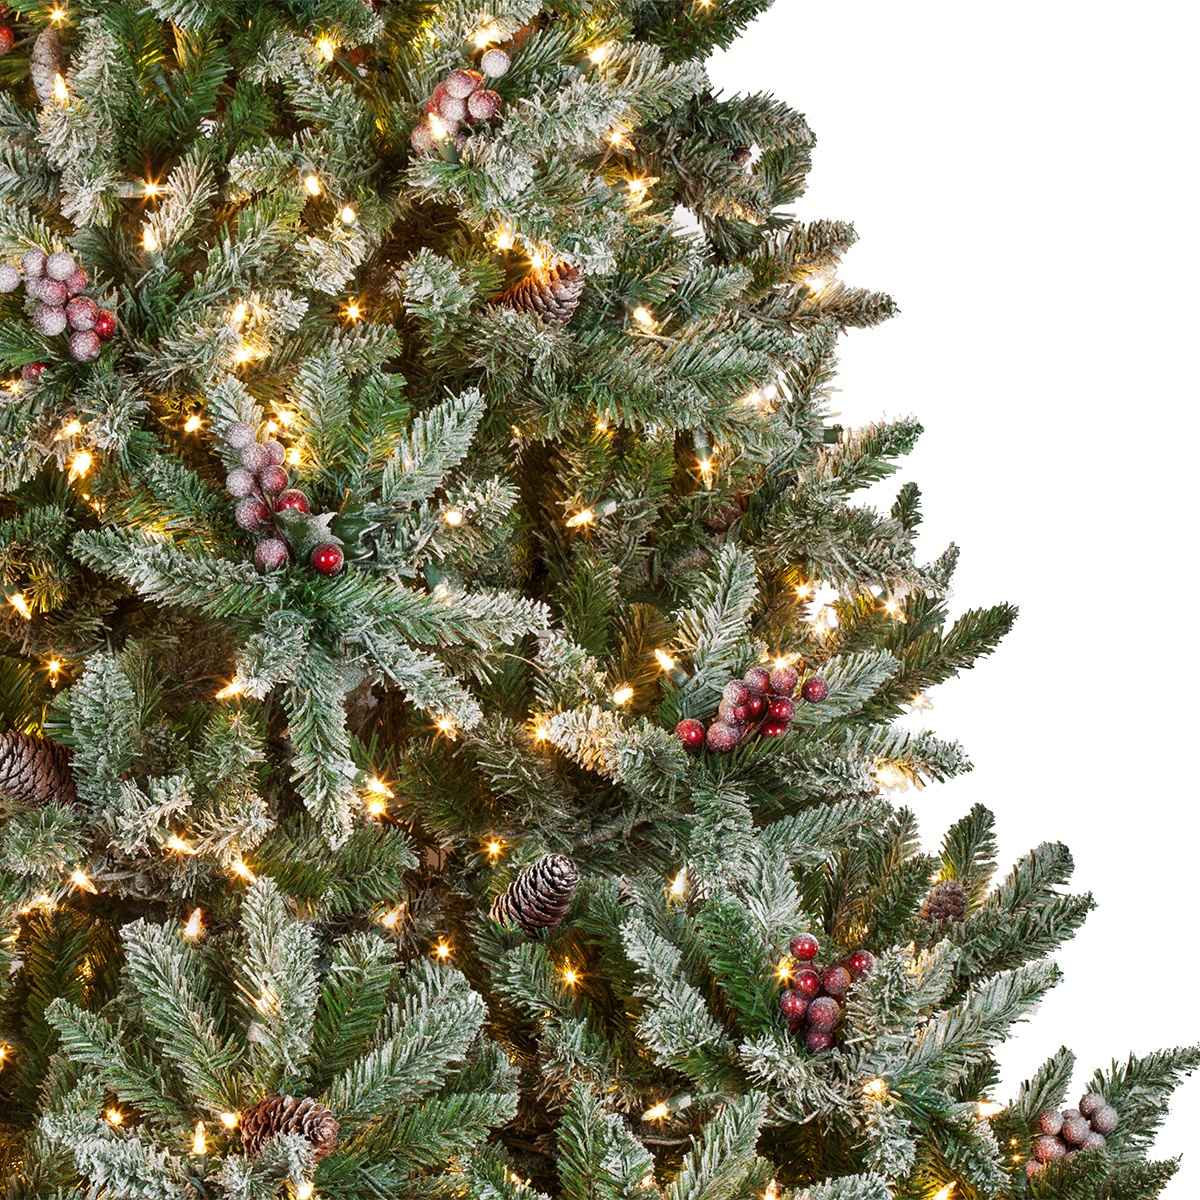 Christmas Tree Return Policy: Recommended Number Of Ornaments